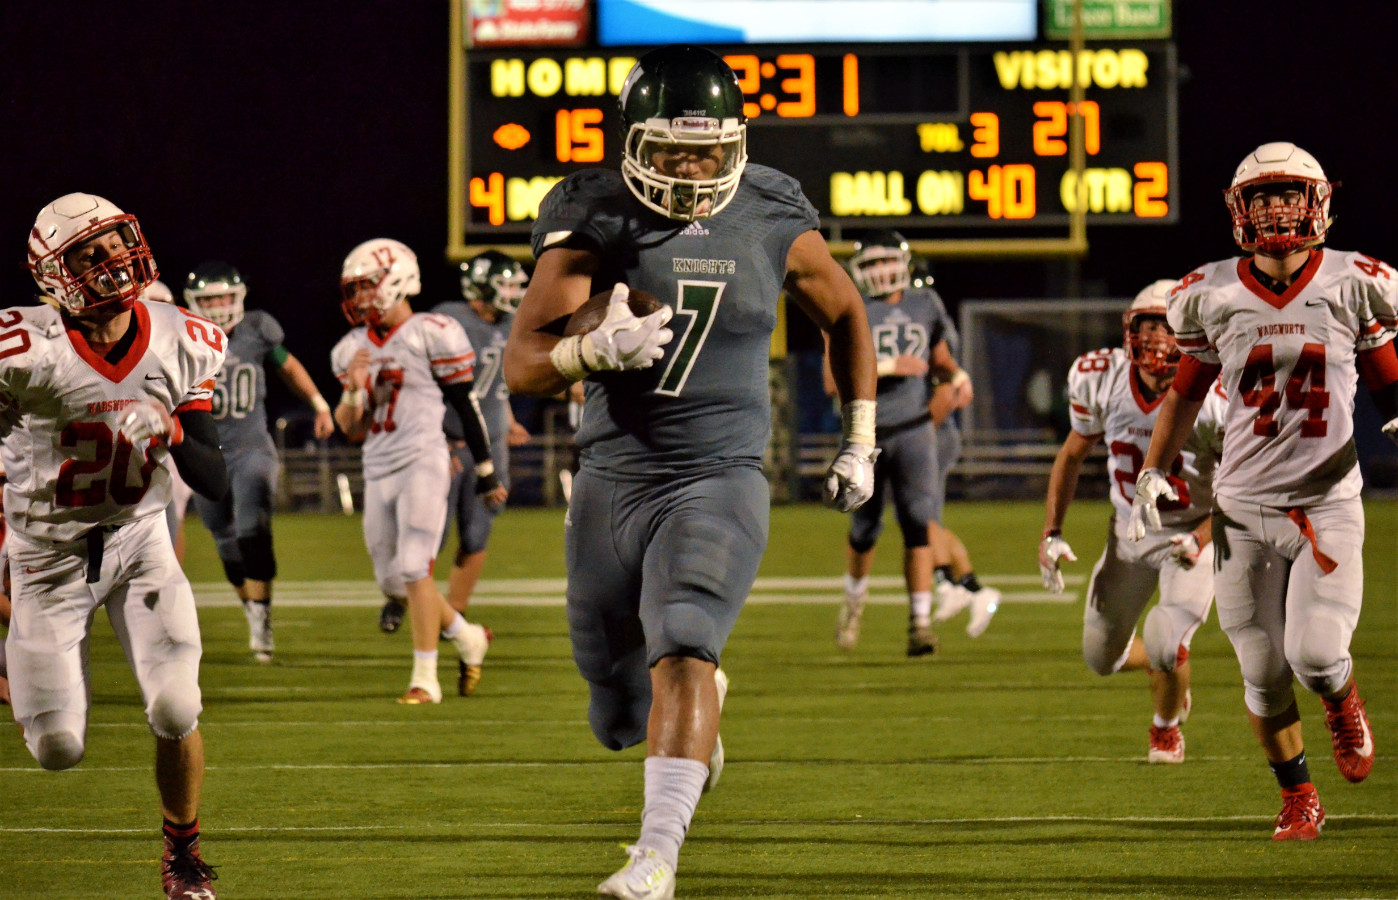 Vic's Corner: Nordonia gets Mauled by Wadsworth 57-29